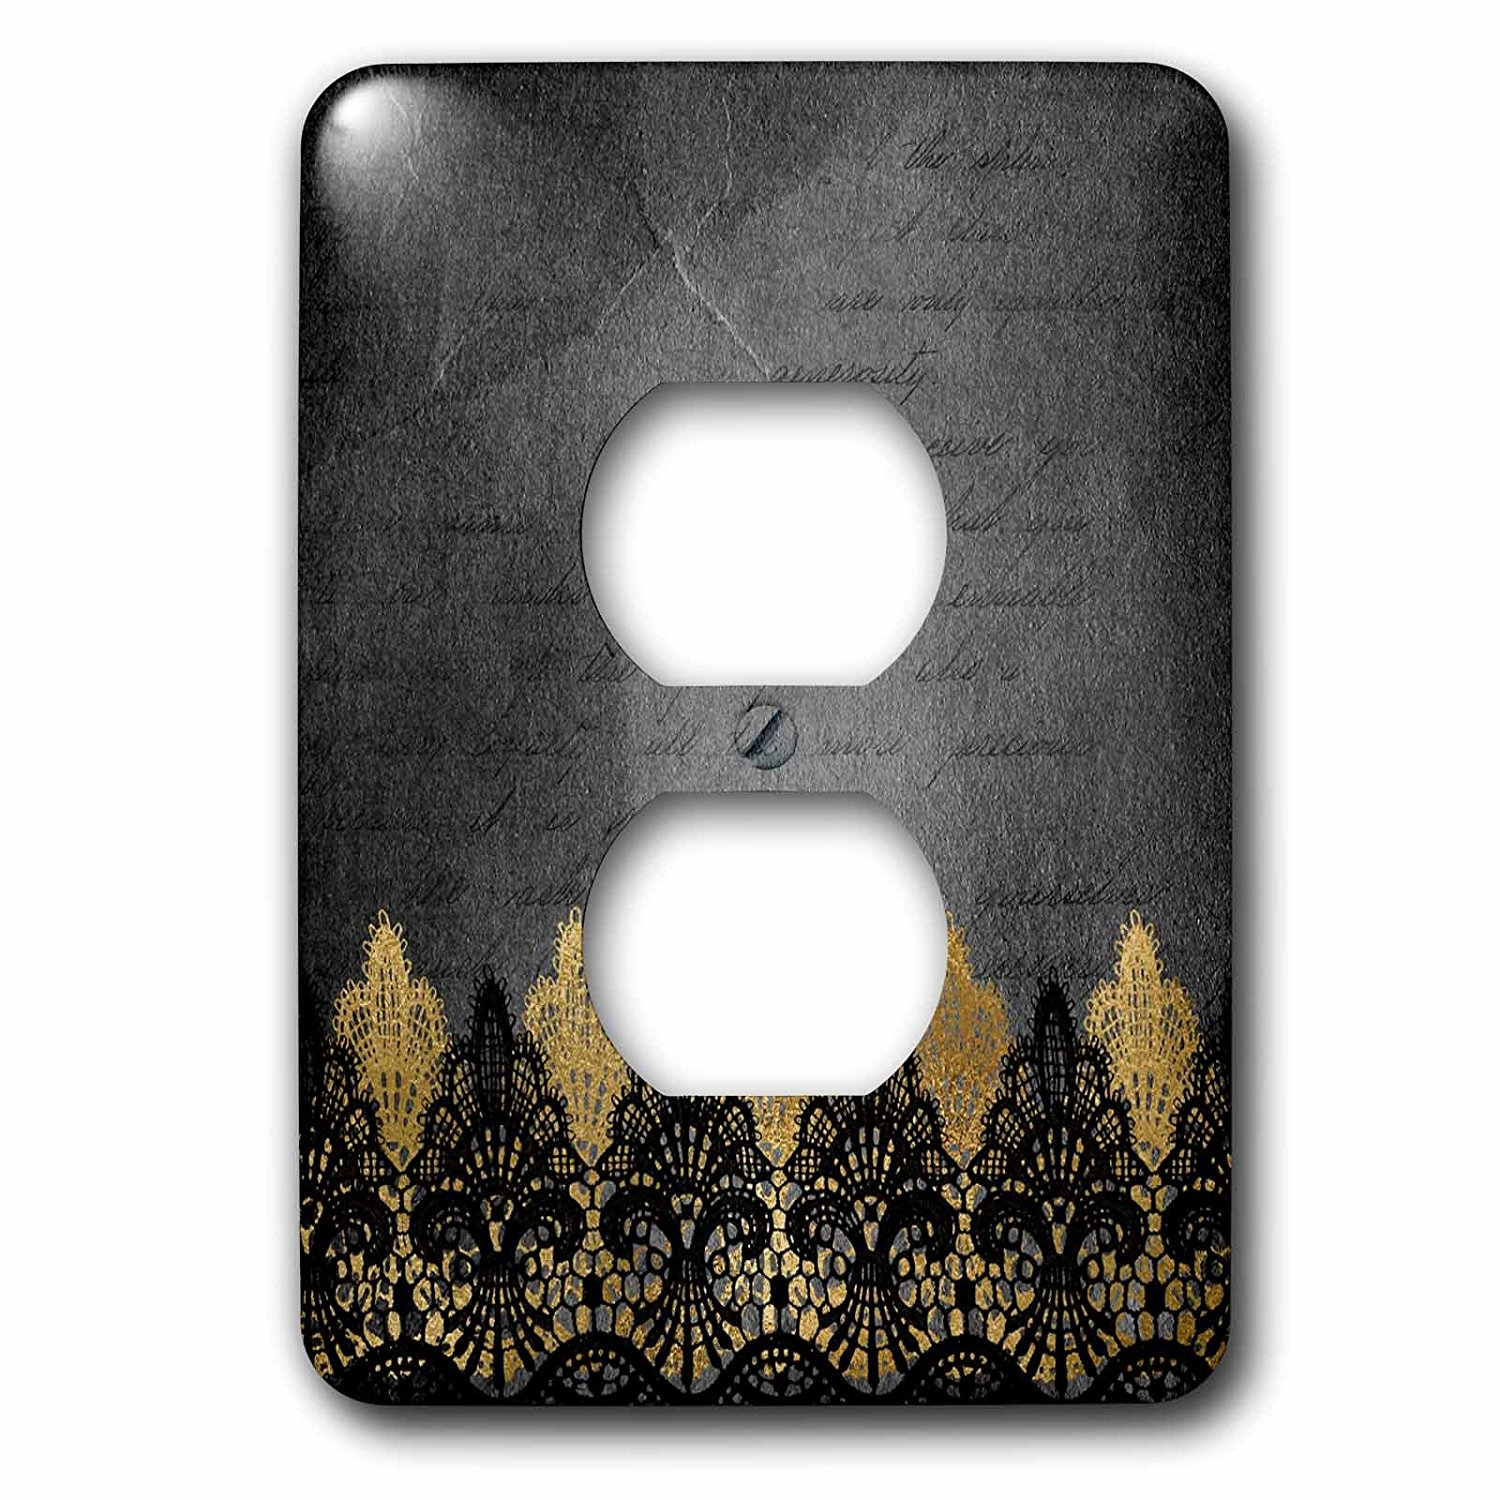 Vintage Light Switch Plate Covers Cheap Vintage Outlet Covers Find Vintage Outlet Covers Deals On